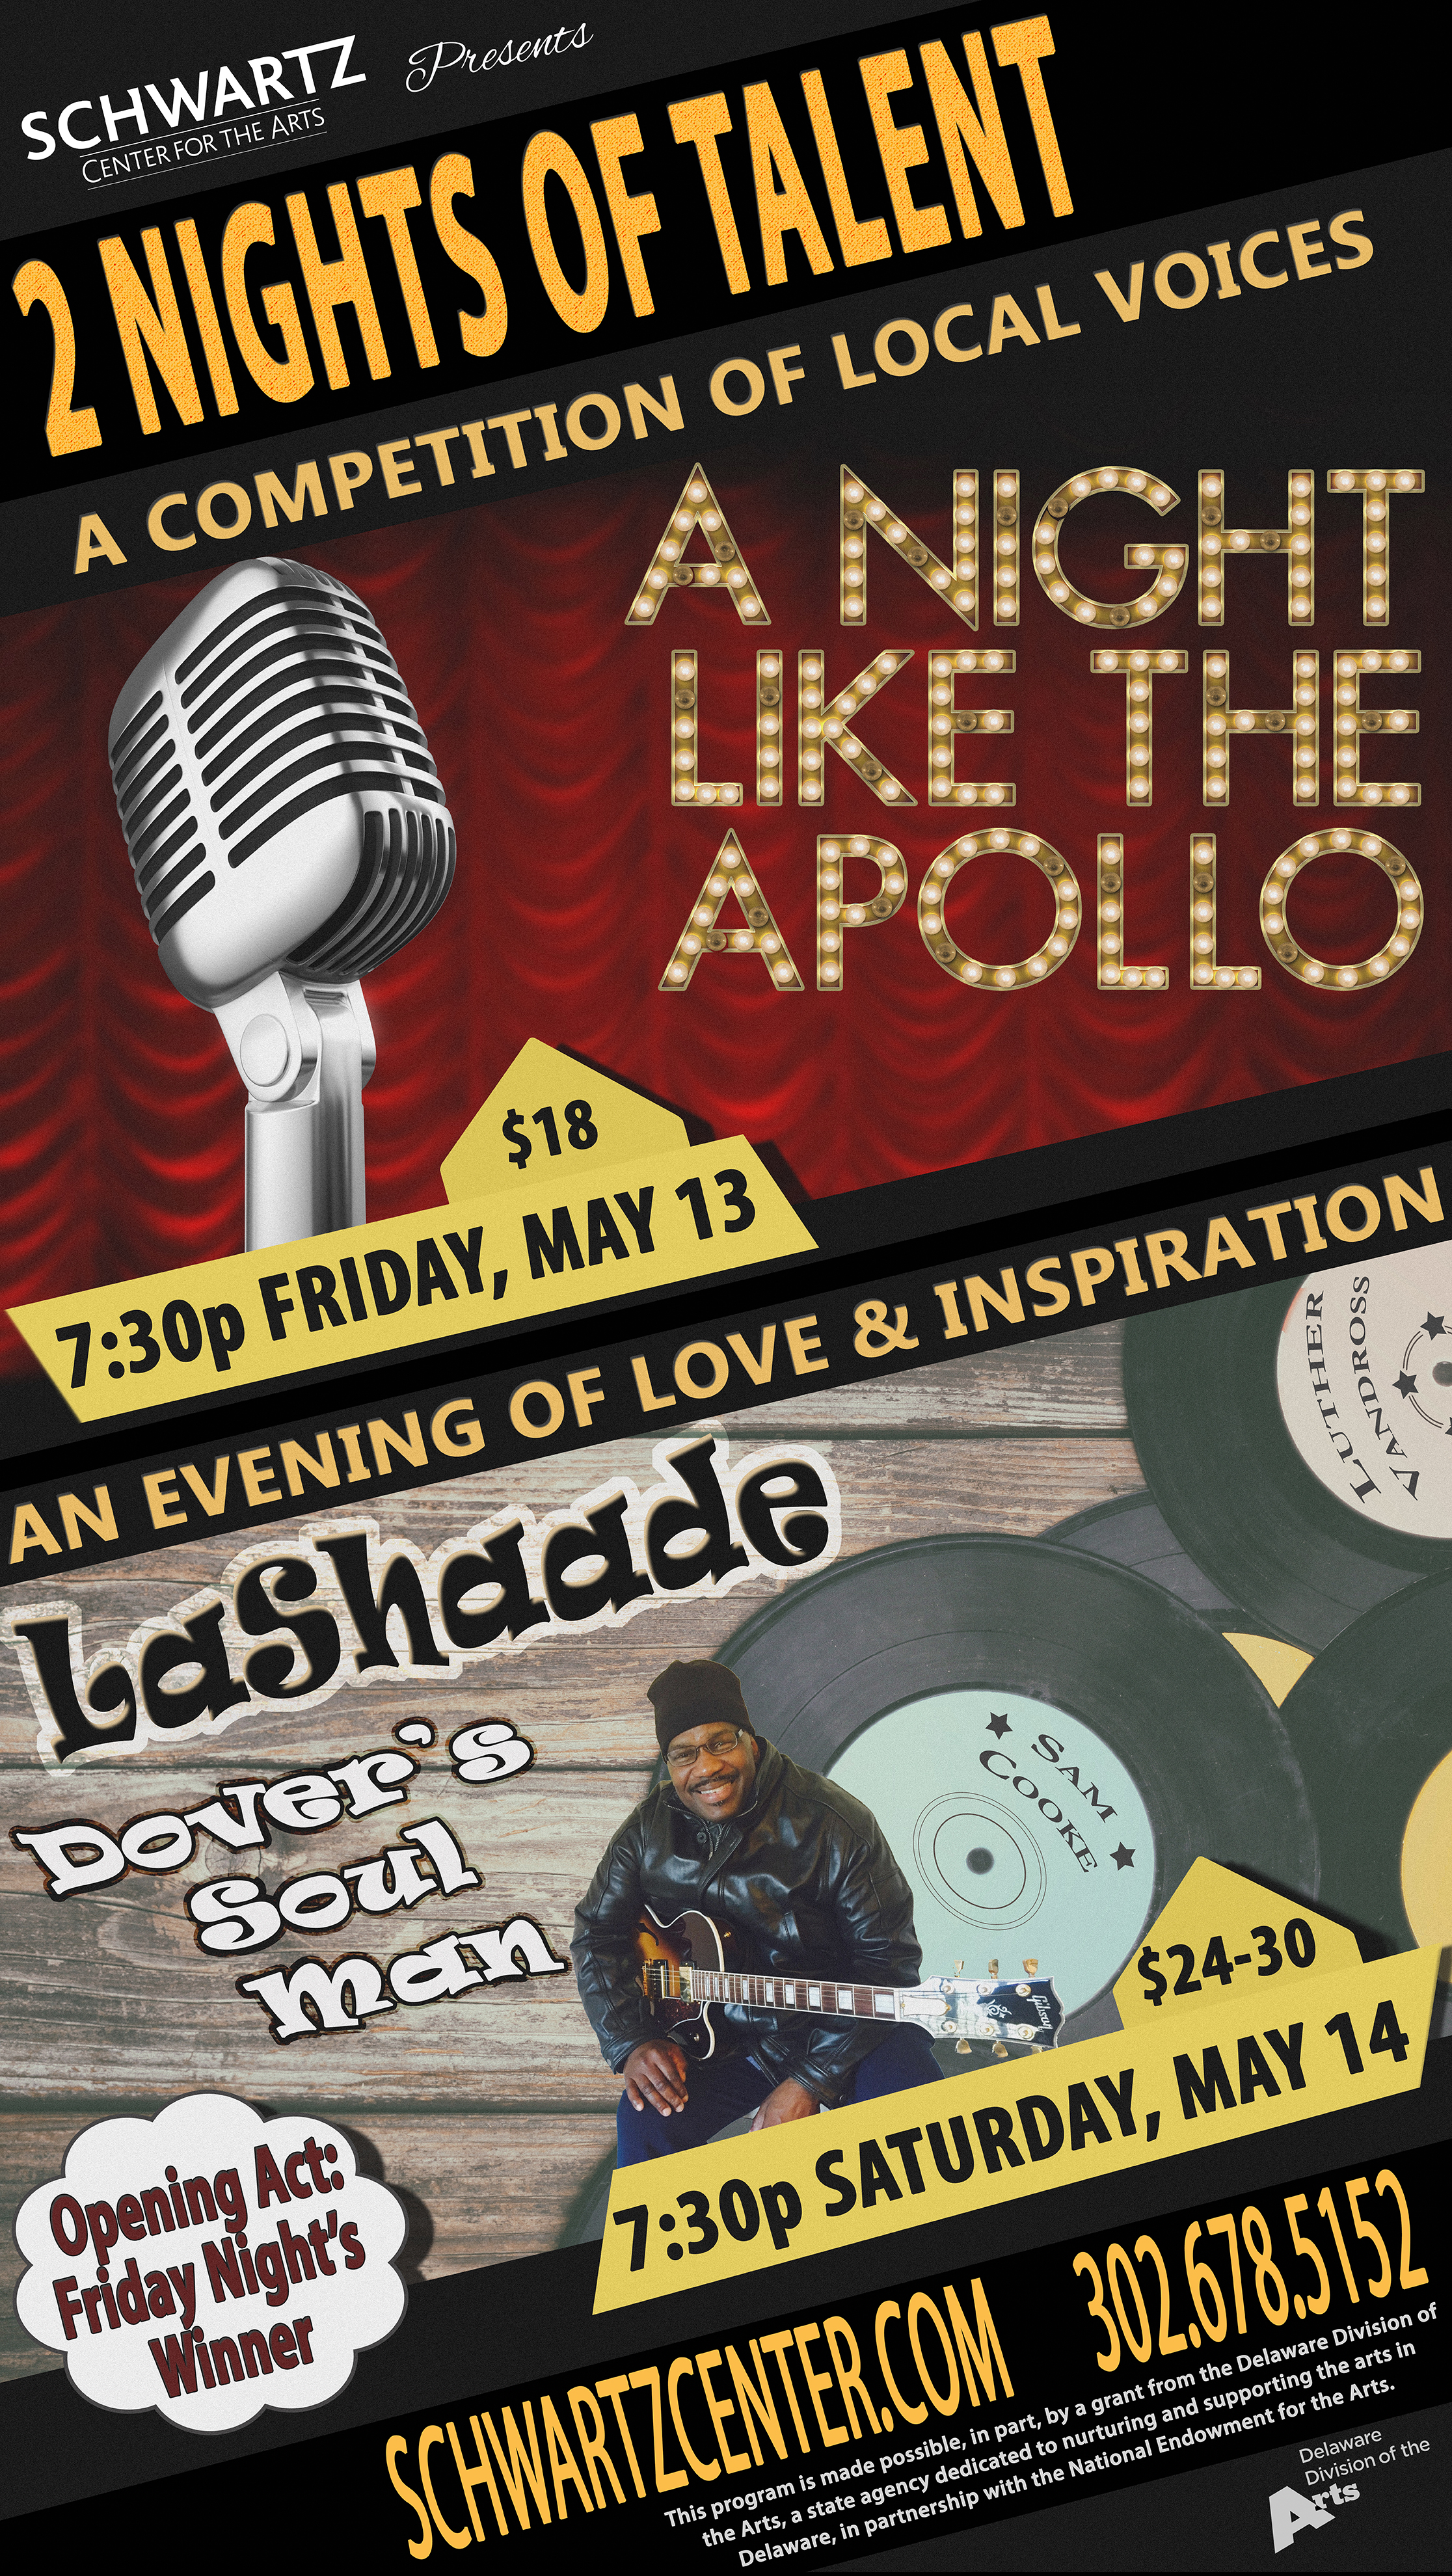 Concert & Event Poster - A Night Like the Apollo, LaShaade